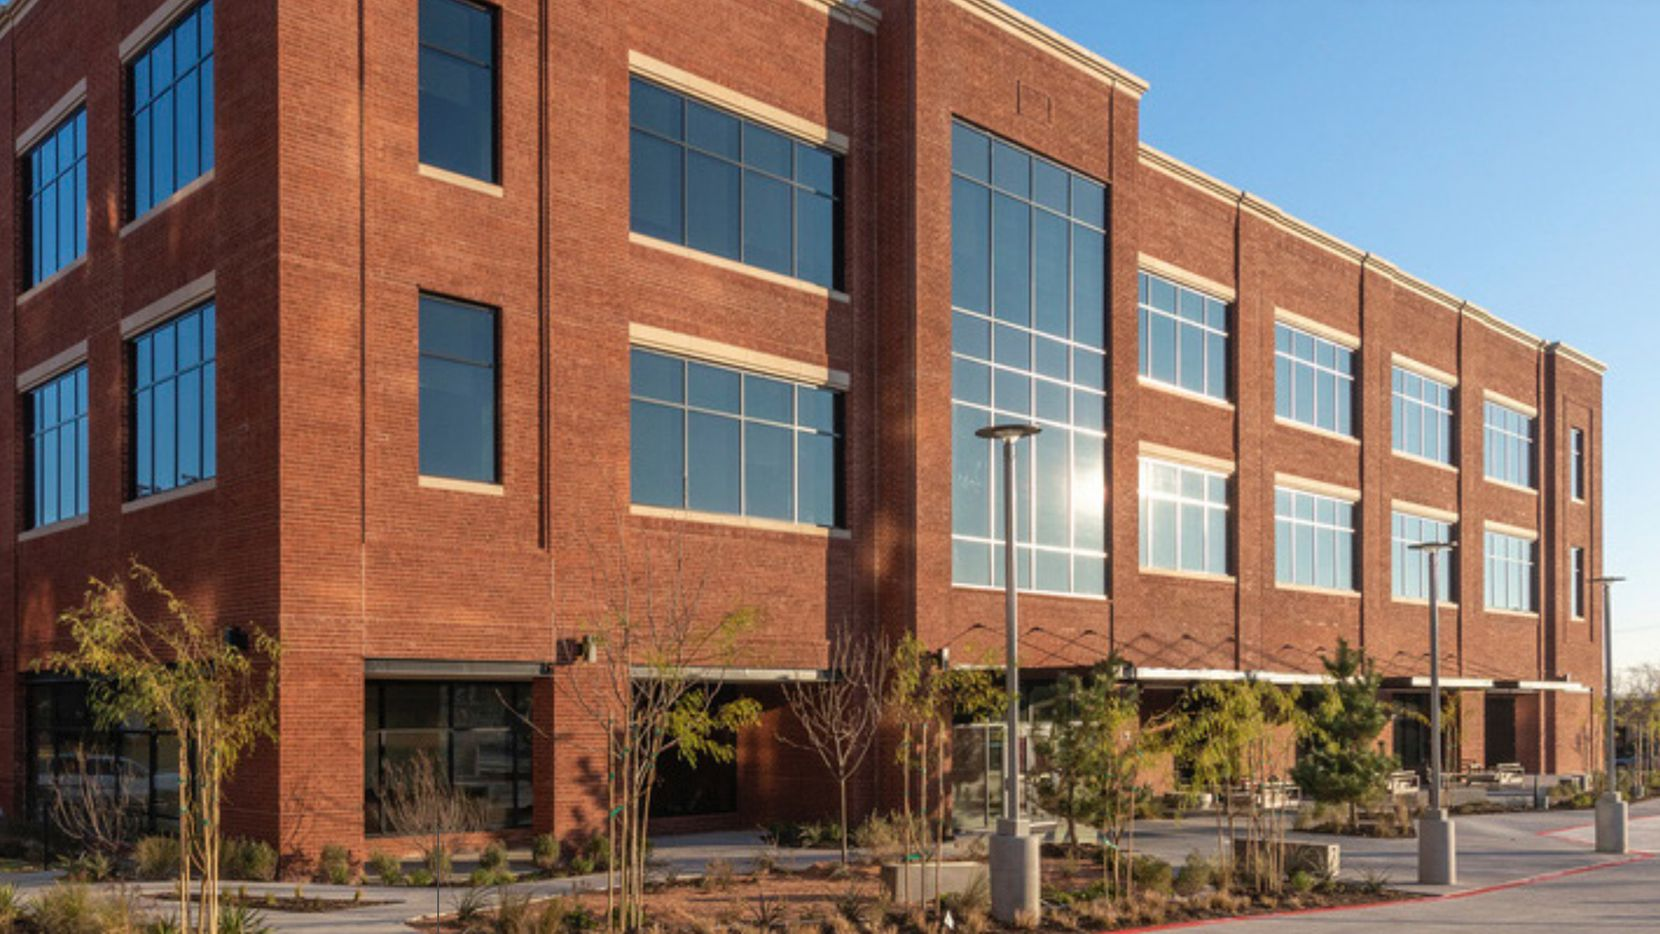 Xcelerate Auto is moving its headquarters to 300 E. Davis in downtown McKInney.